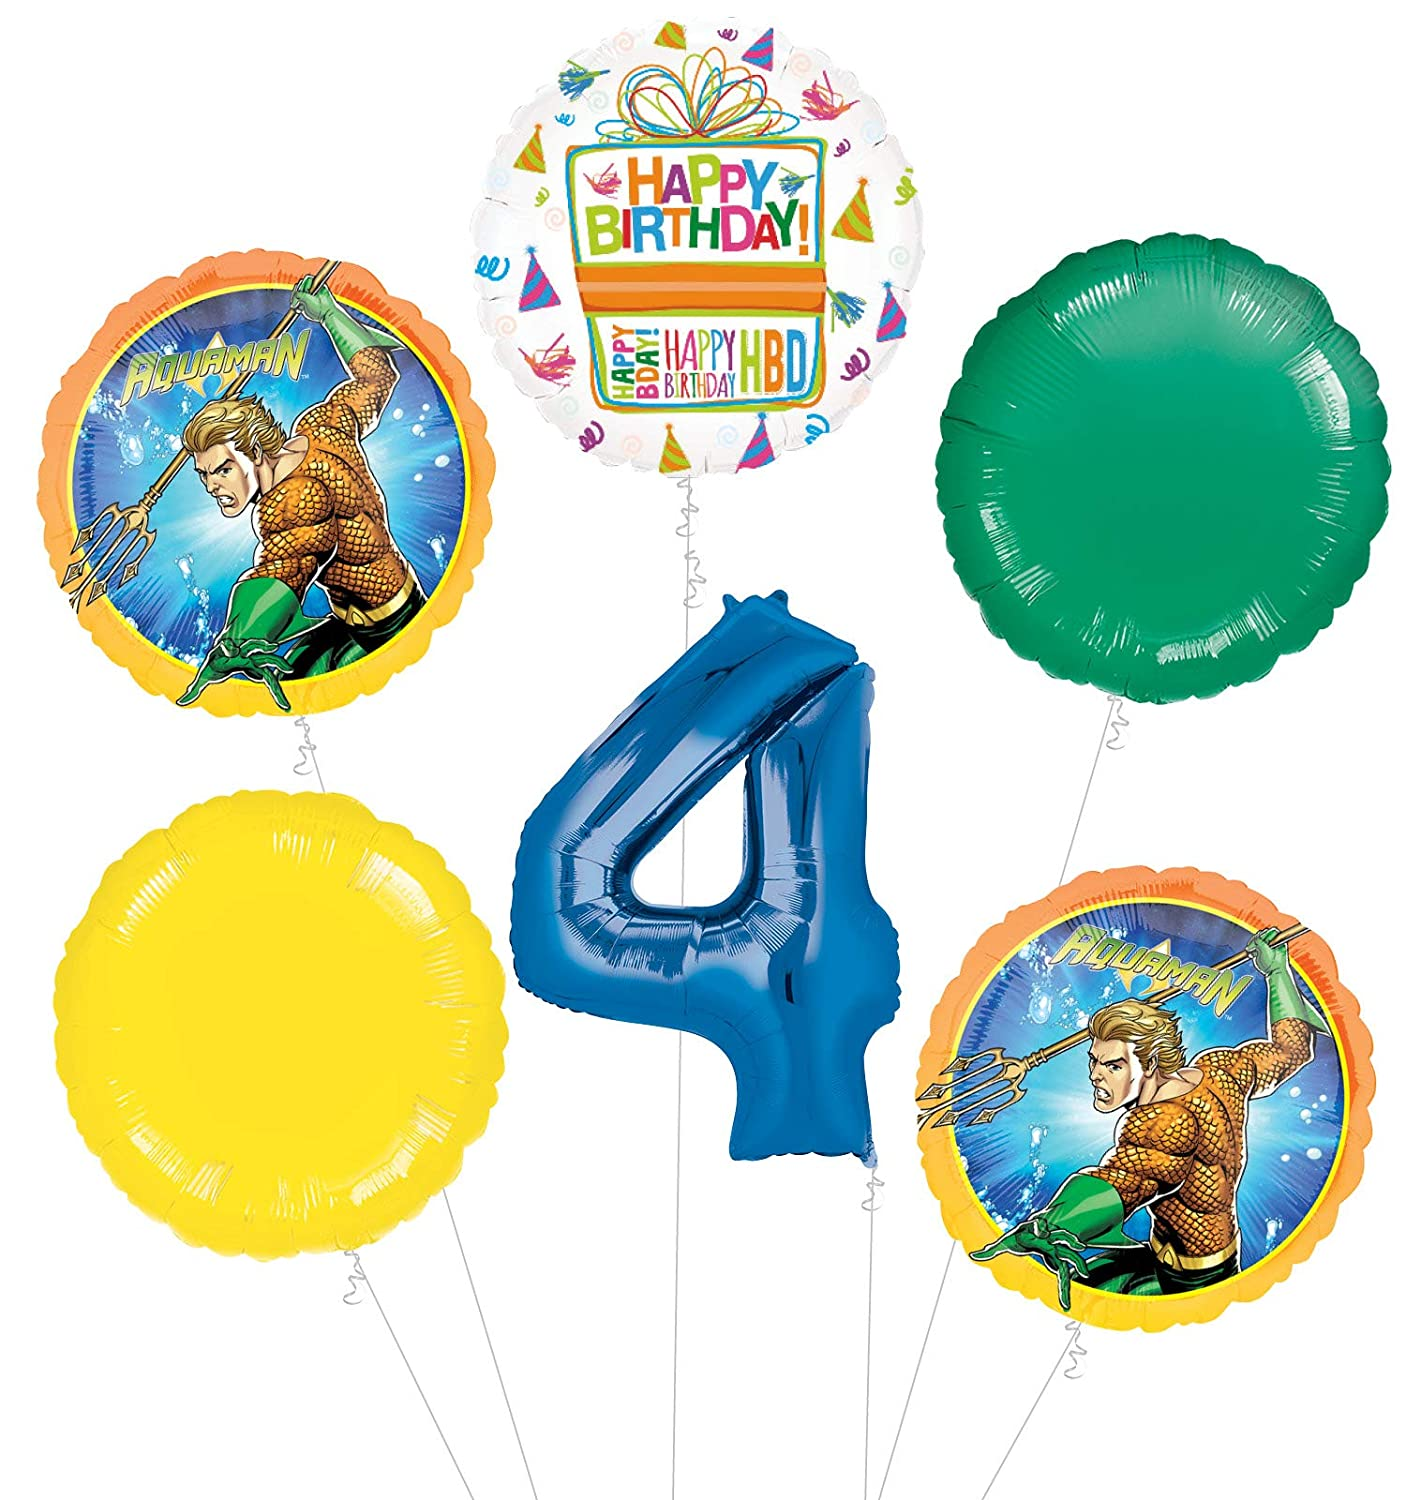 Amazon Aquaman 4th Birthday Party Supplies Balloon Bouquet Decorations Toys Games